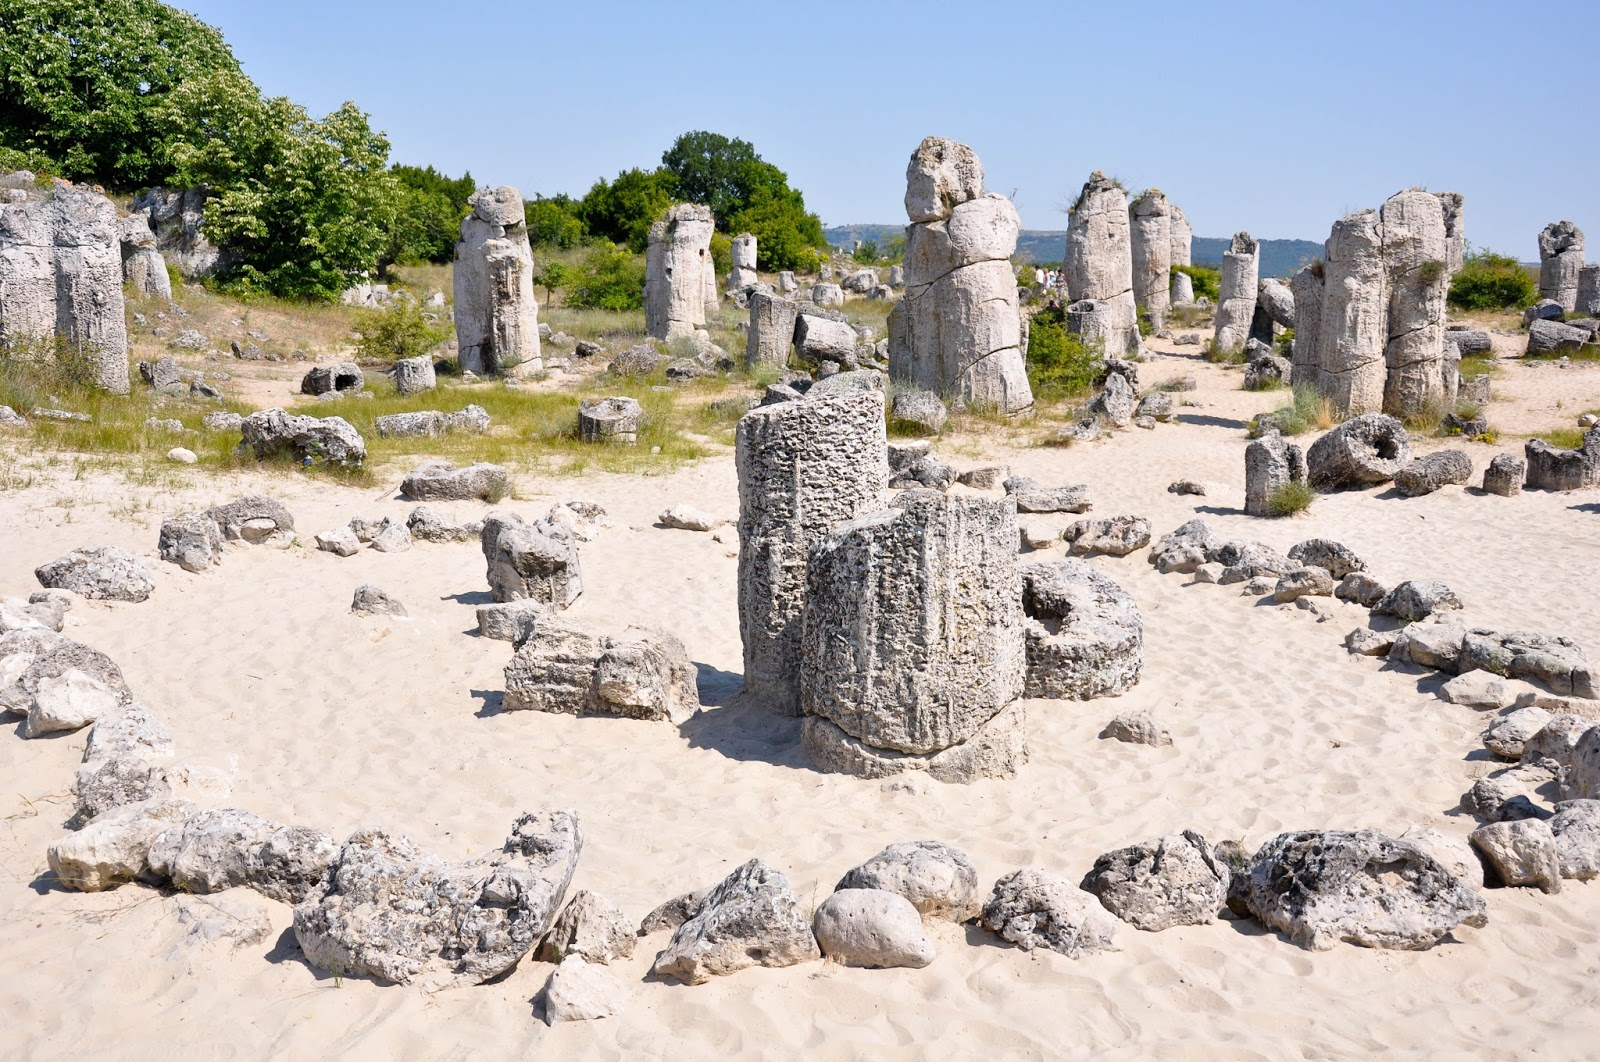 A view from the Magic Circle, The Stone Forest, Varna, Bulgaria